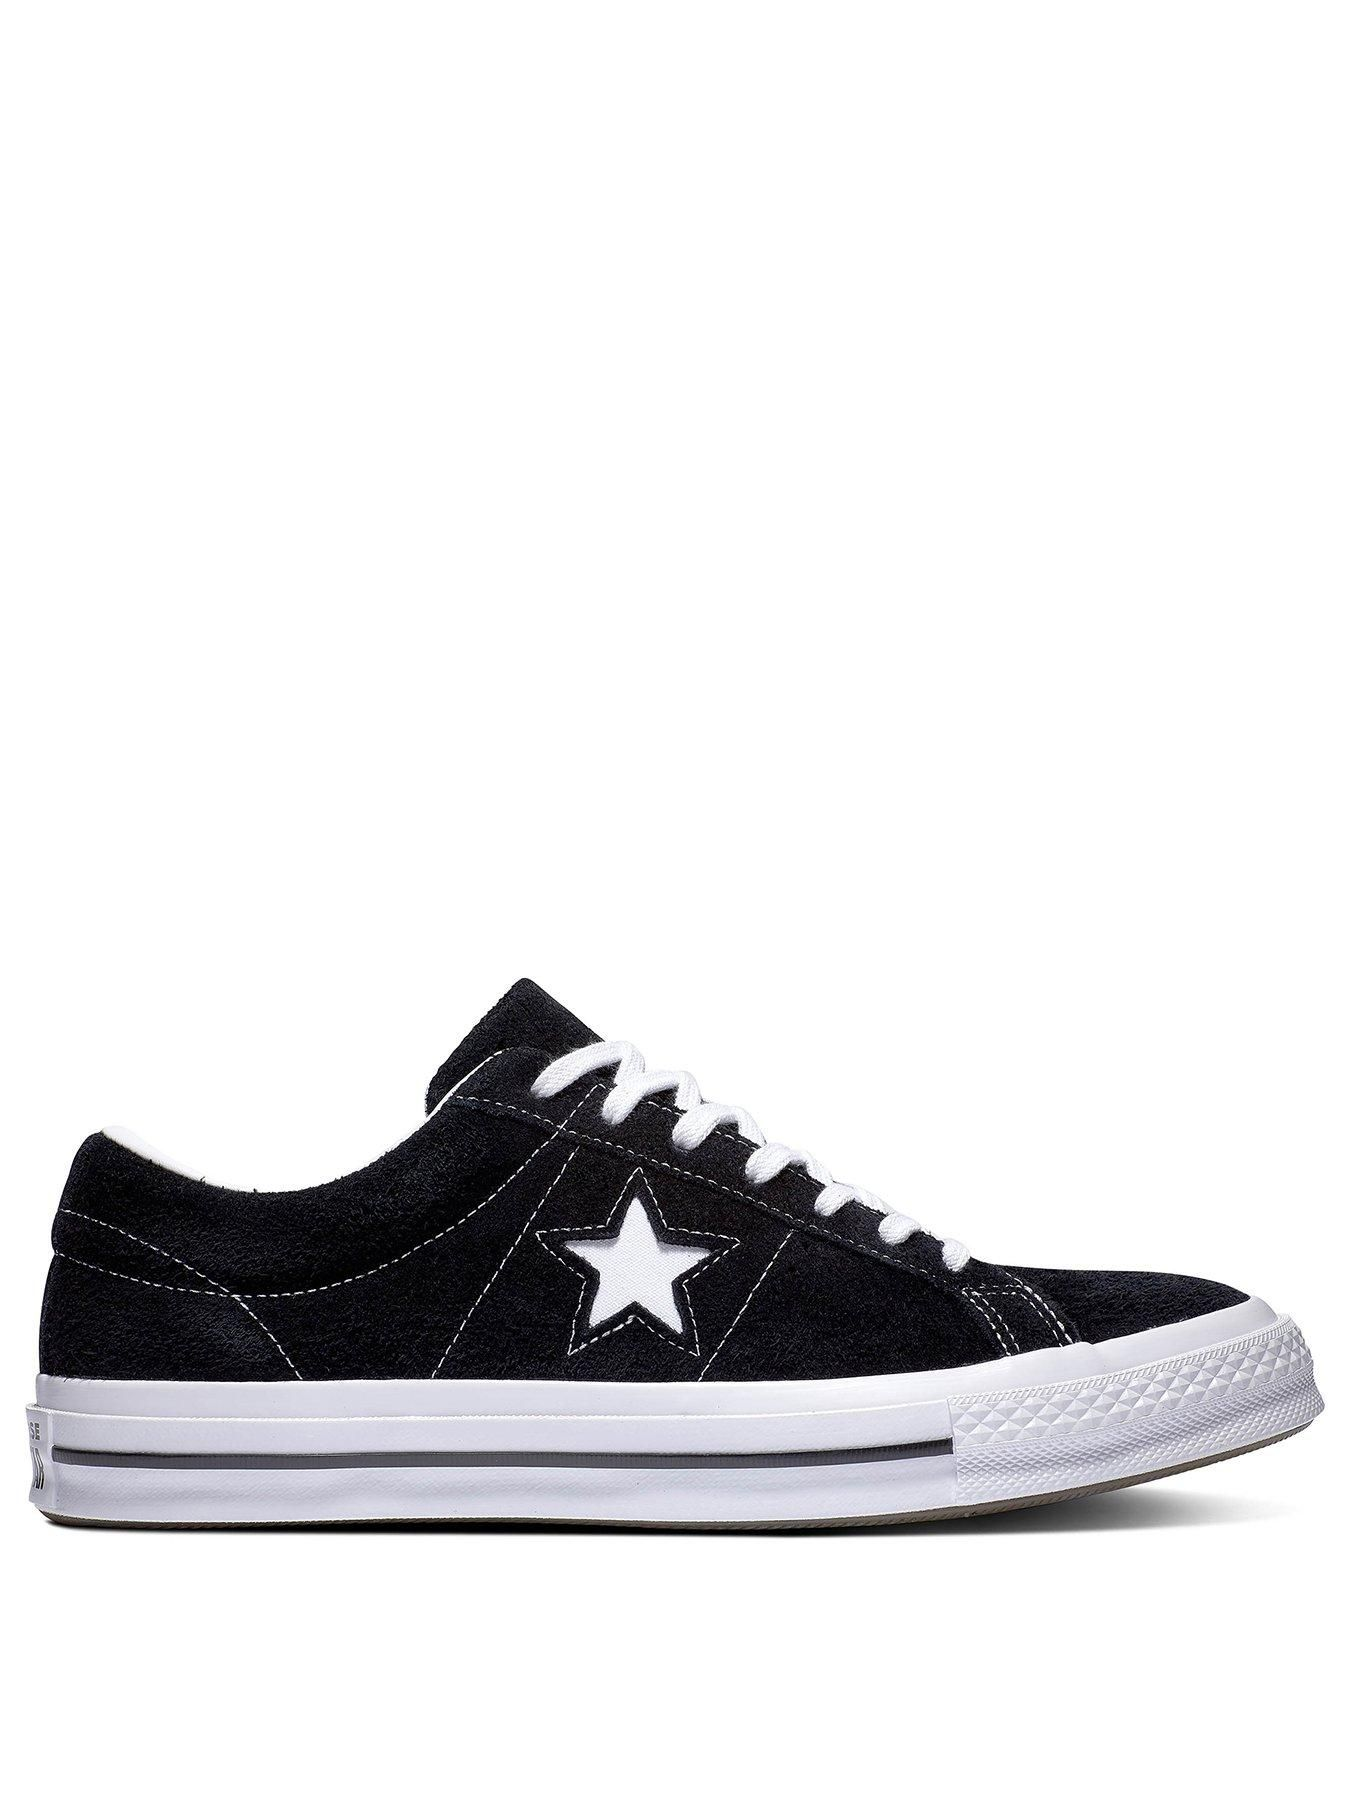 One Star Suede Ox Black | Converse one star, Converse, One